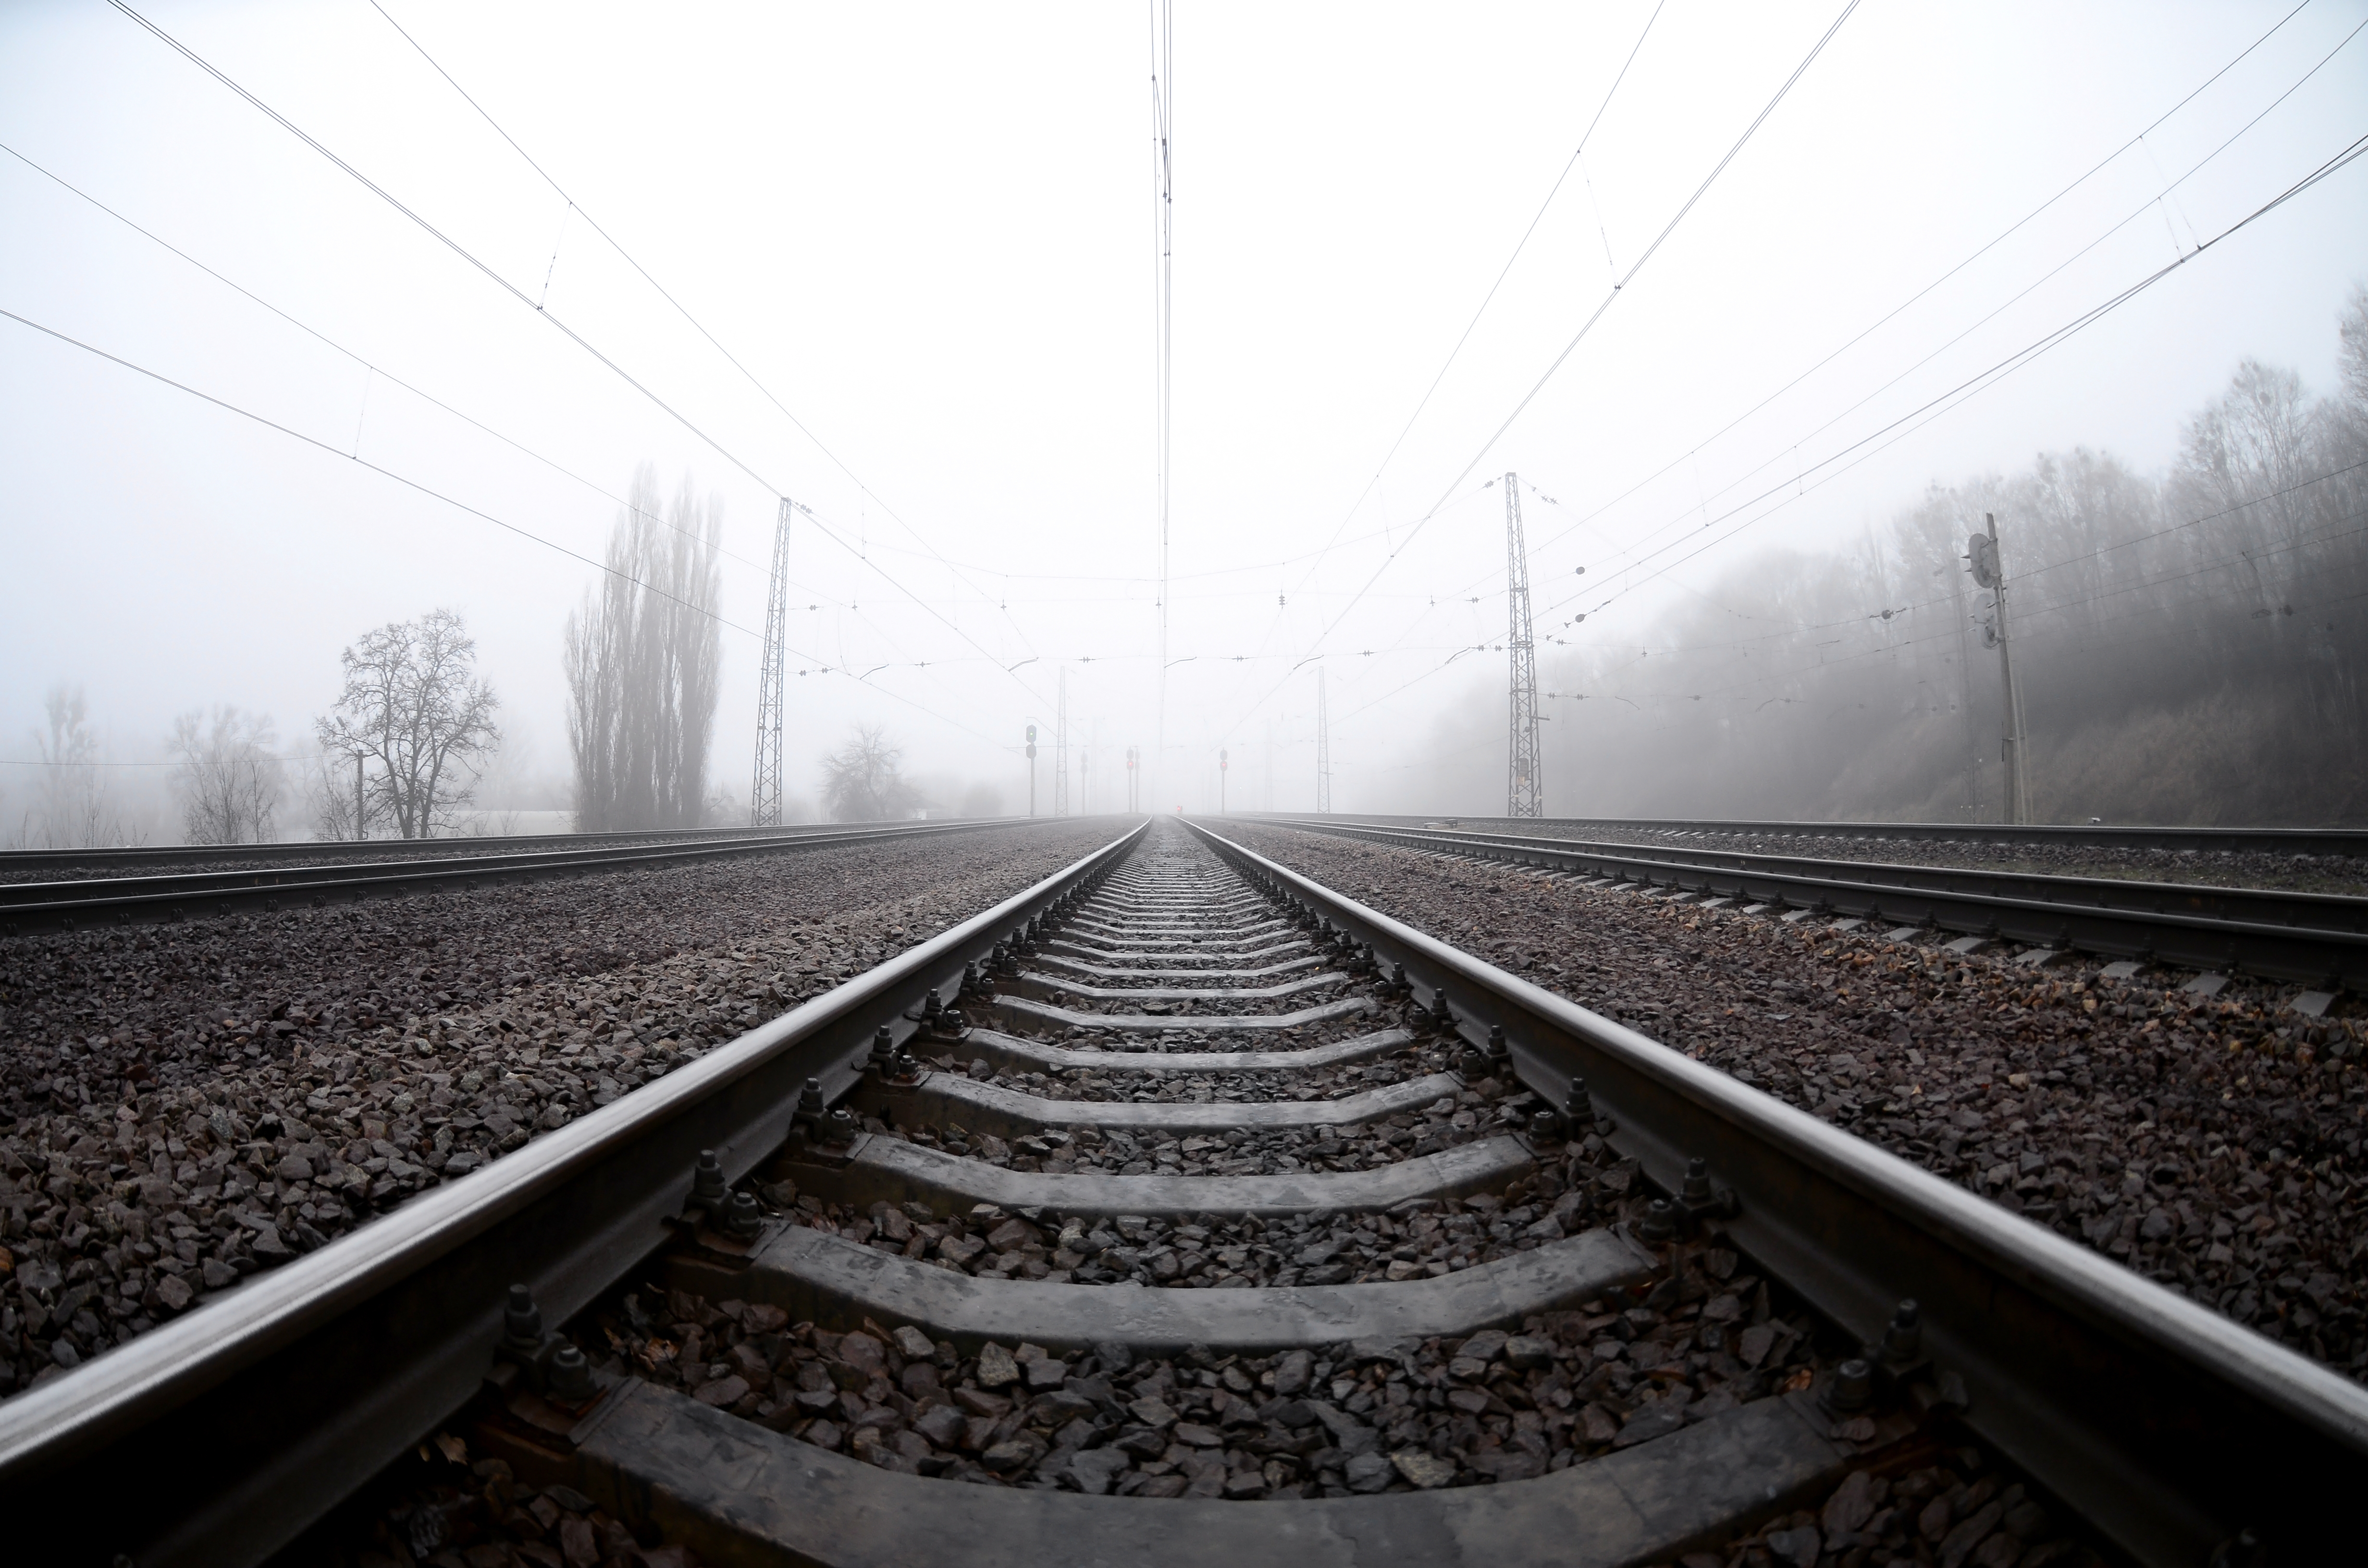 nominated-fog-railway-foggy-landscape-background-white-outdoor-station-railroad-transportation_t20_a7X92w